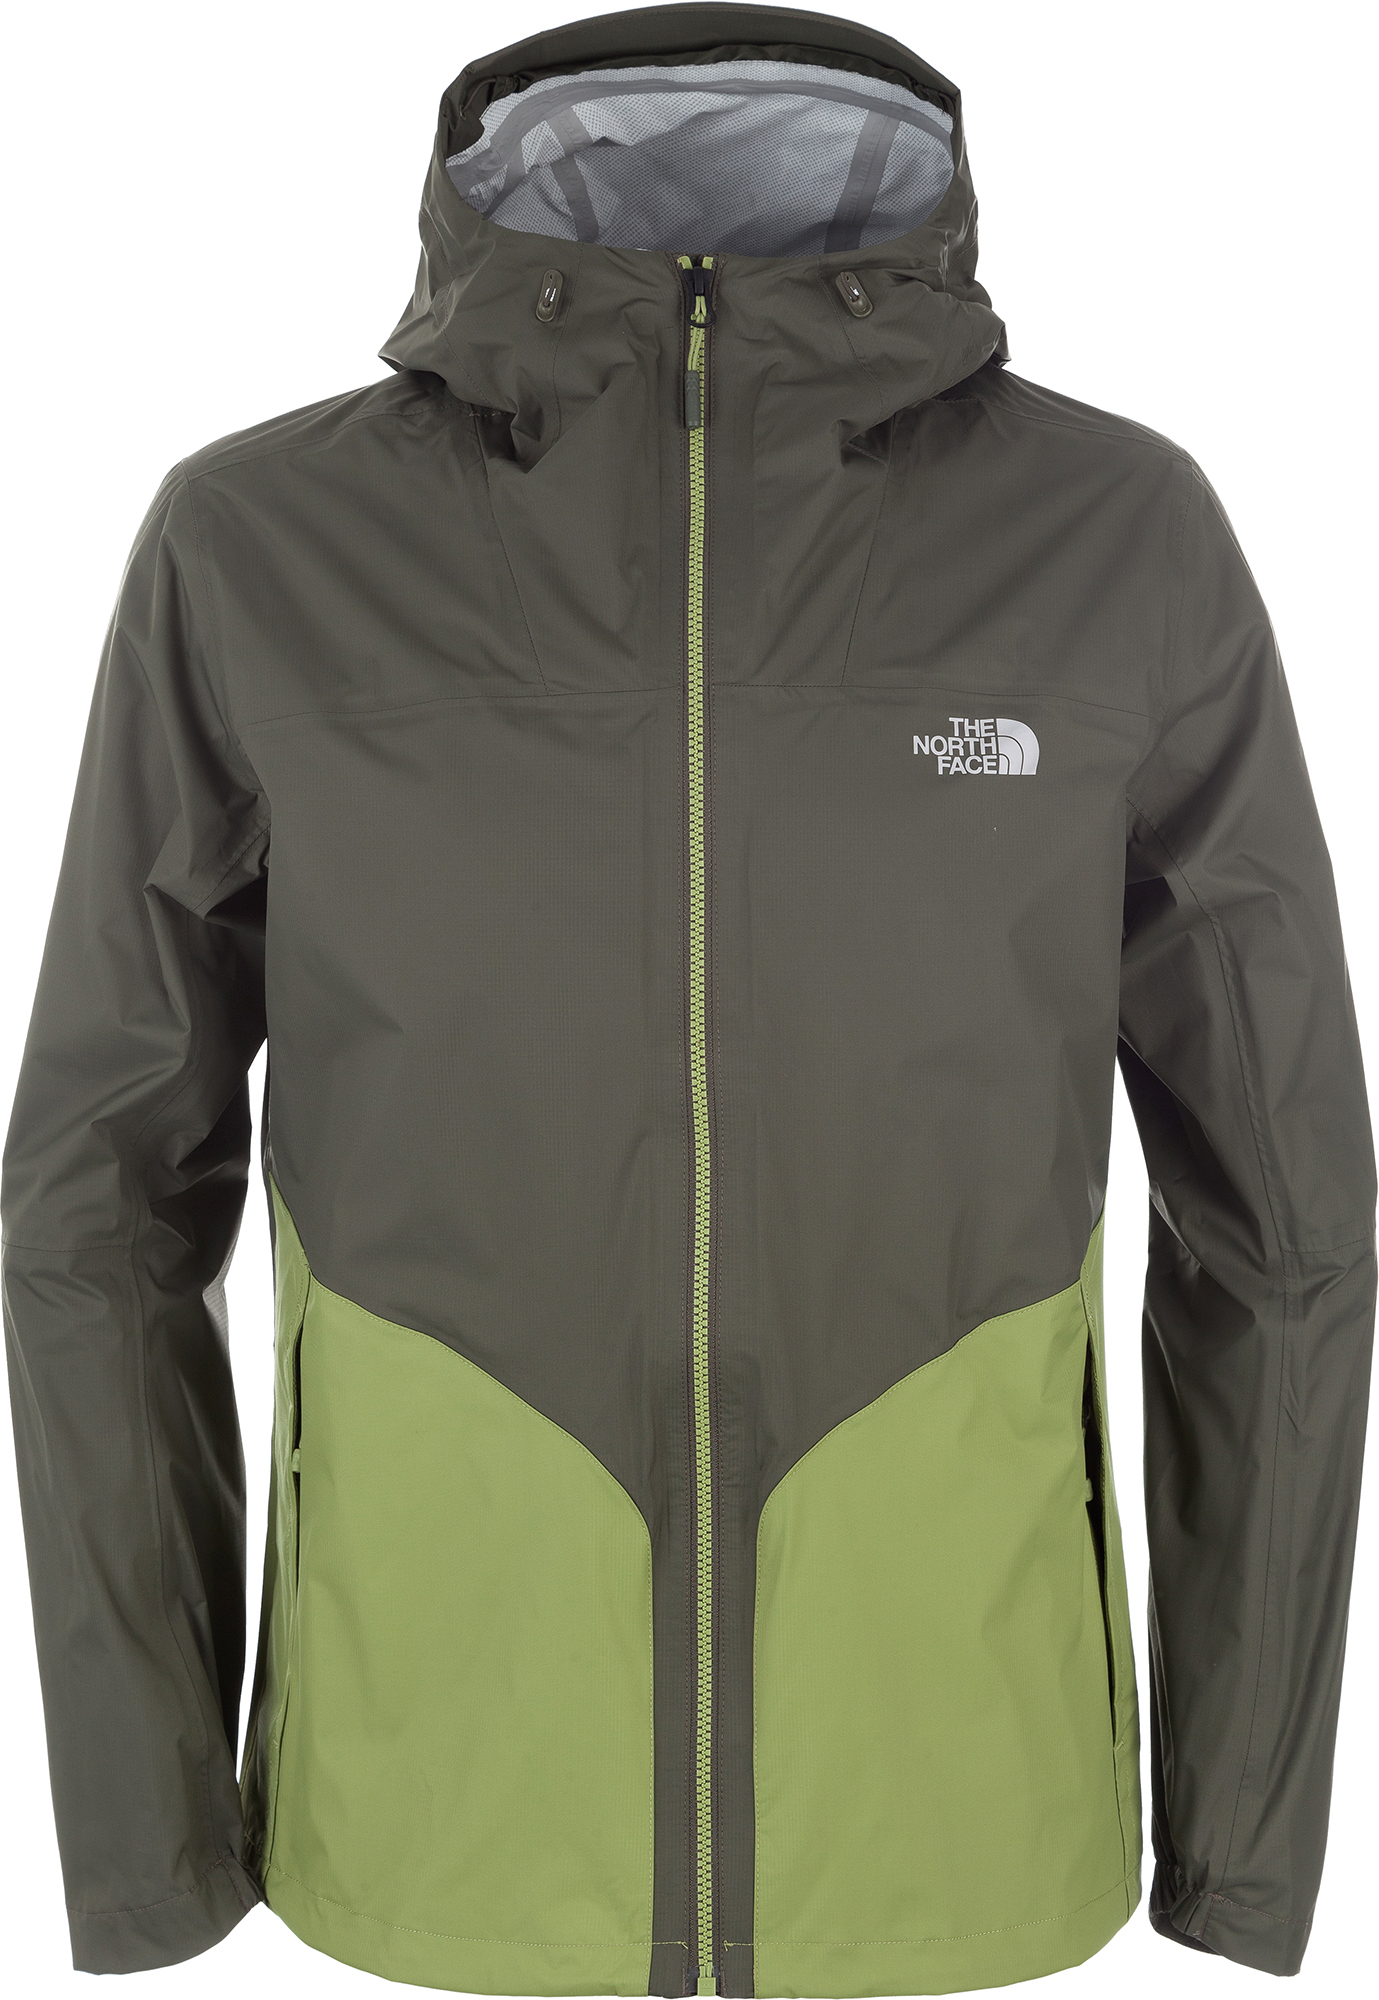 The North Face Ветровка мужская The North Face Purna 2.5L, размер 46